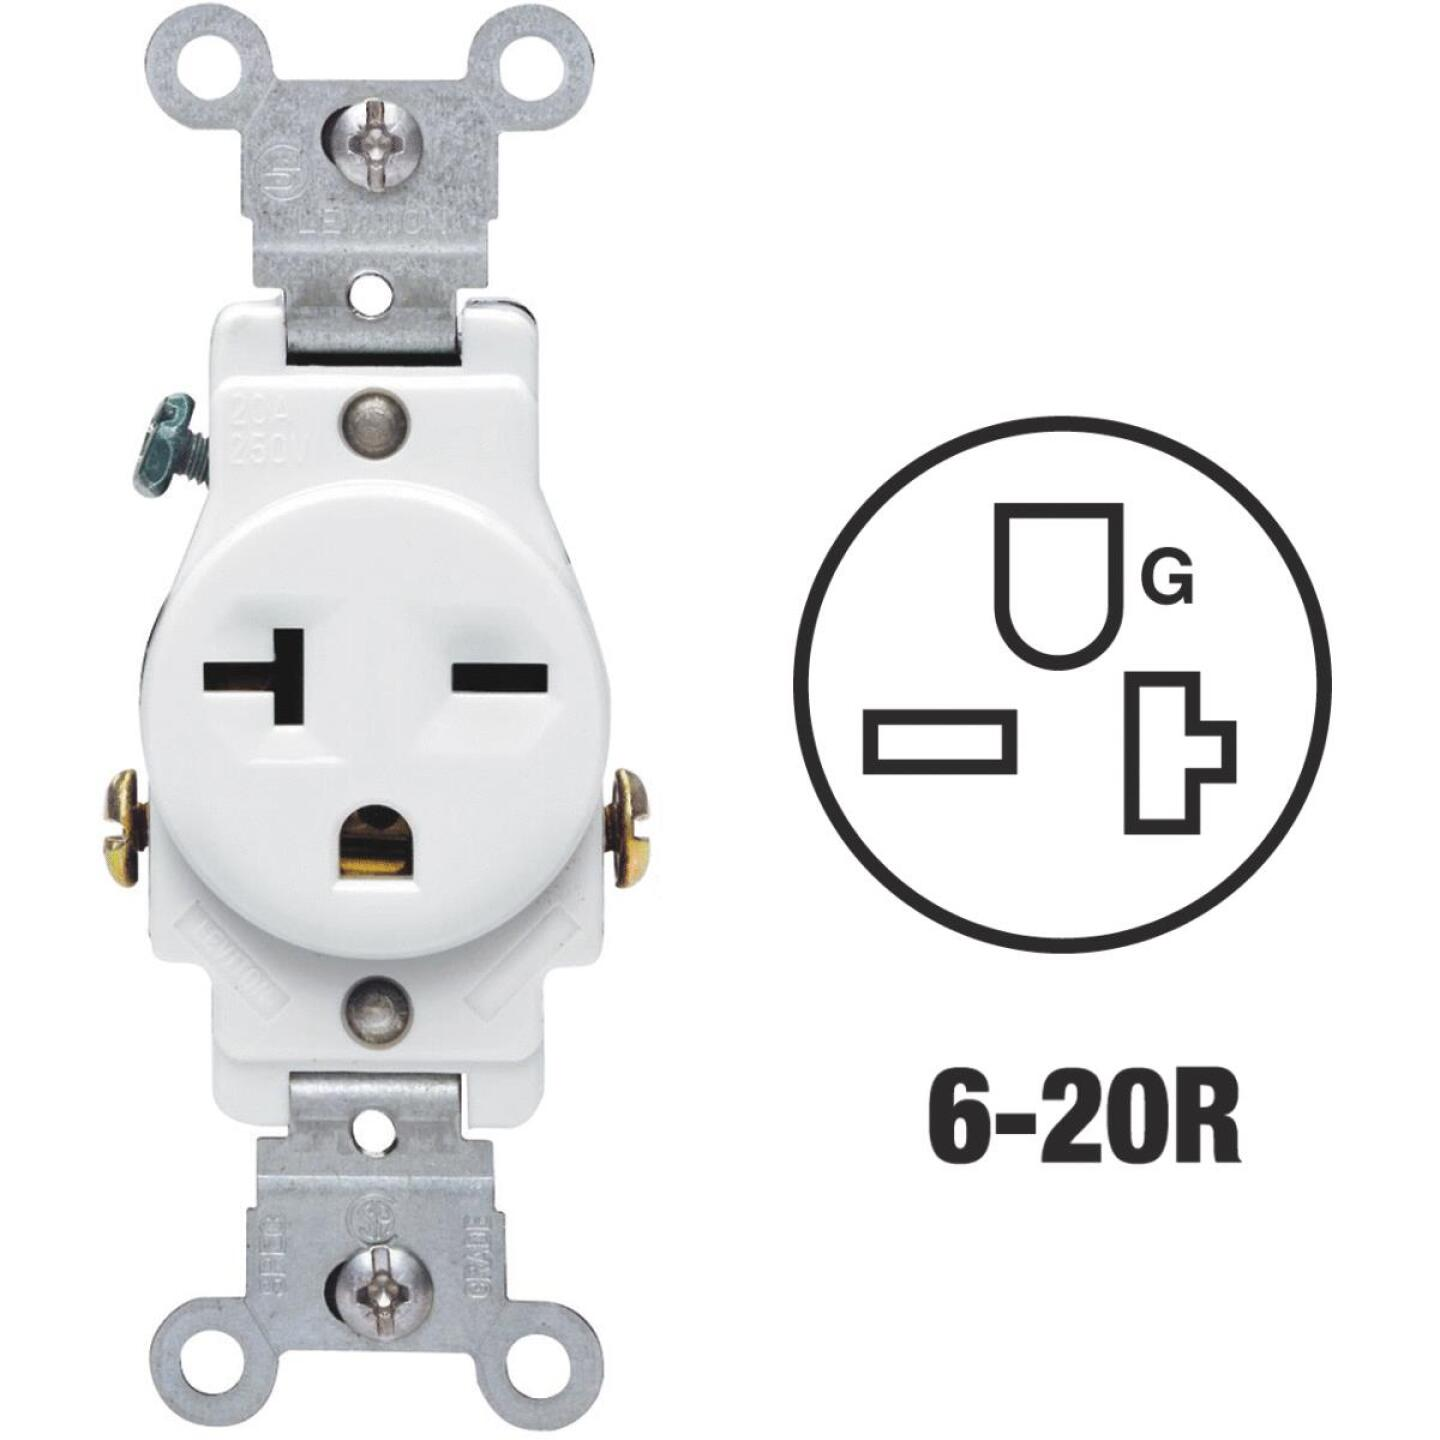 Leviton 20A White Heavy-Duty 6-20R Grounding Single Outlet Image 1